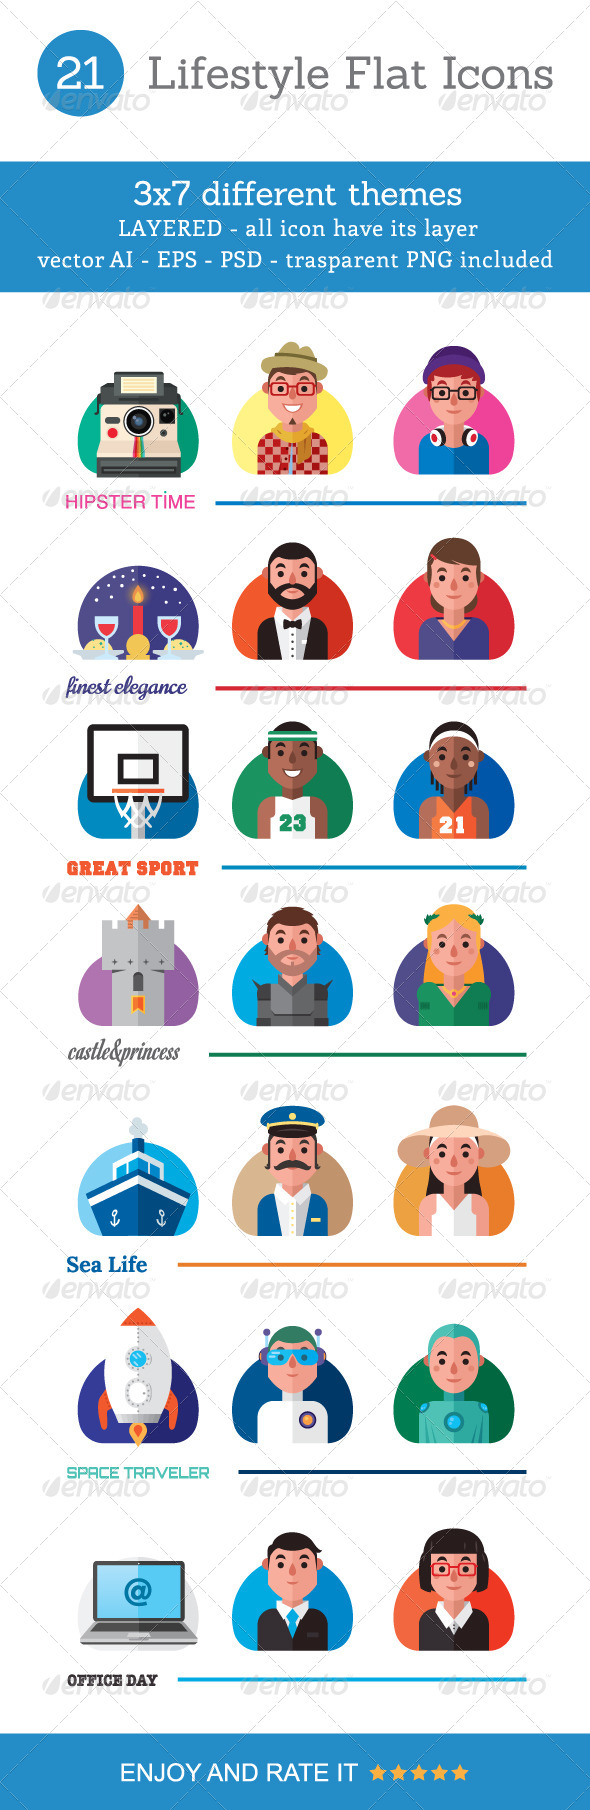 GraphicRiver 21 Lifestyle Flat Icons 8771406